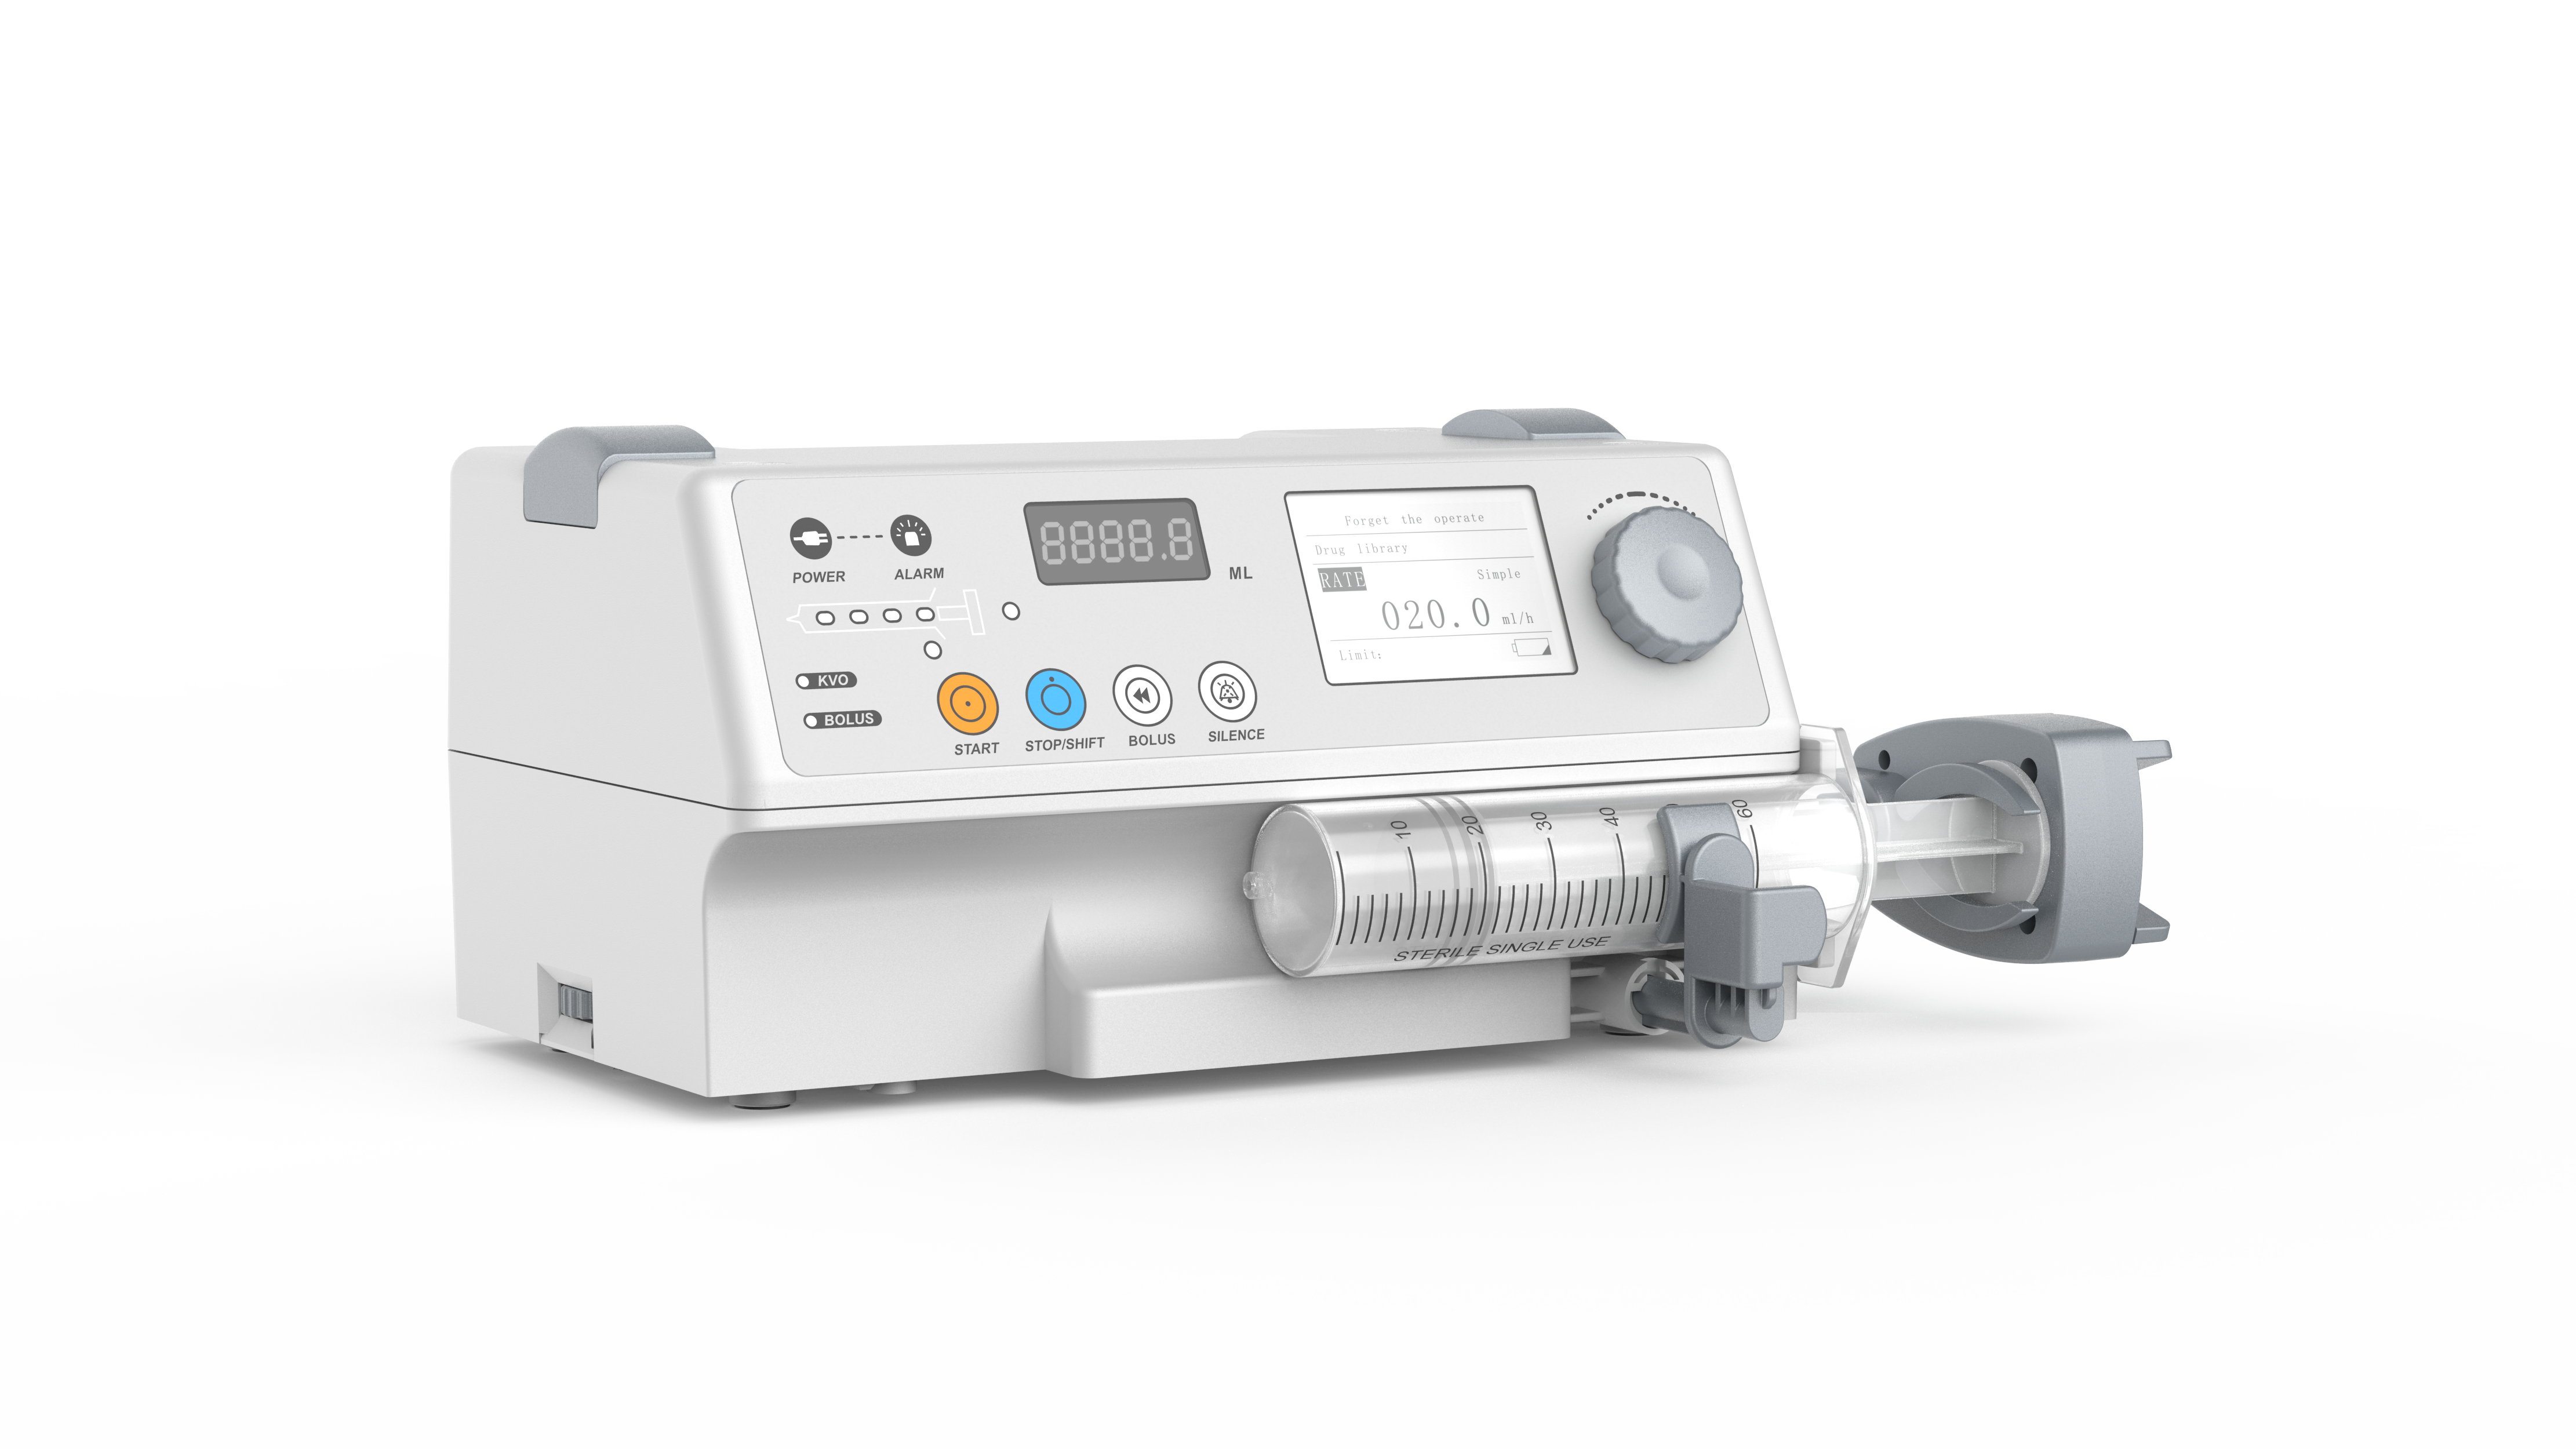 SUNFUSION First Generation Pump 12.28455377 in 2020